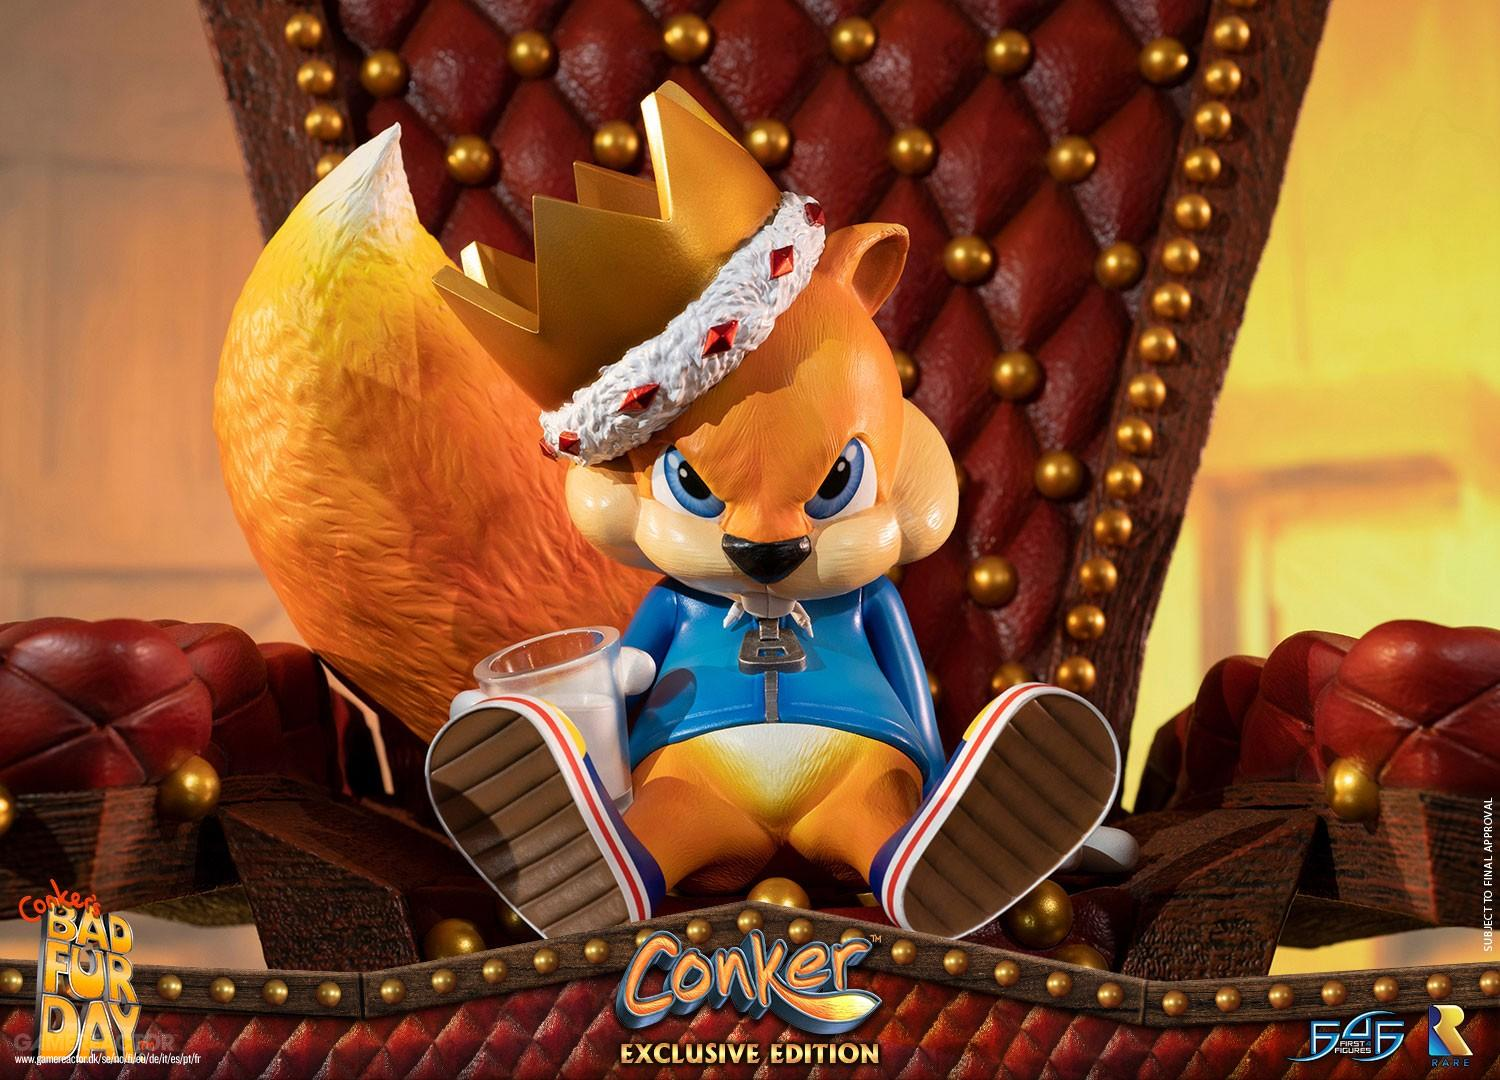 Equally Stunning And Pricey Conker Statue Up For Pre Order